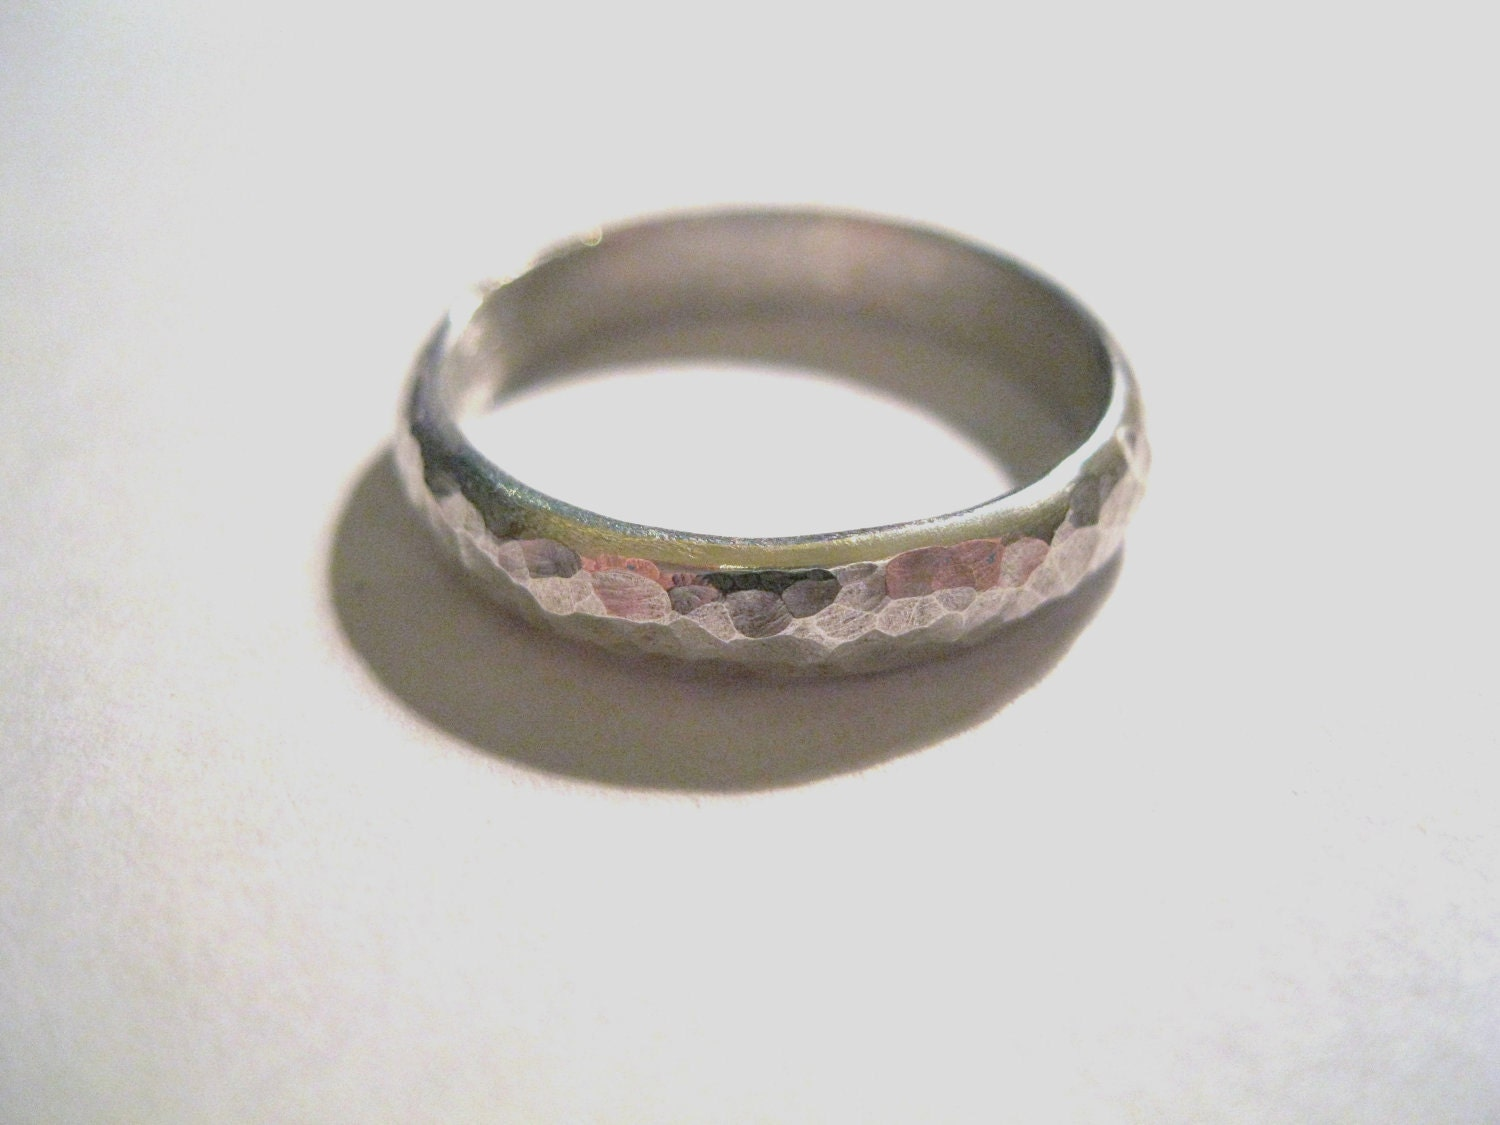 Wedding Band For Male Is Placed On The Ring Finger